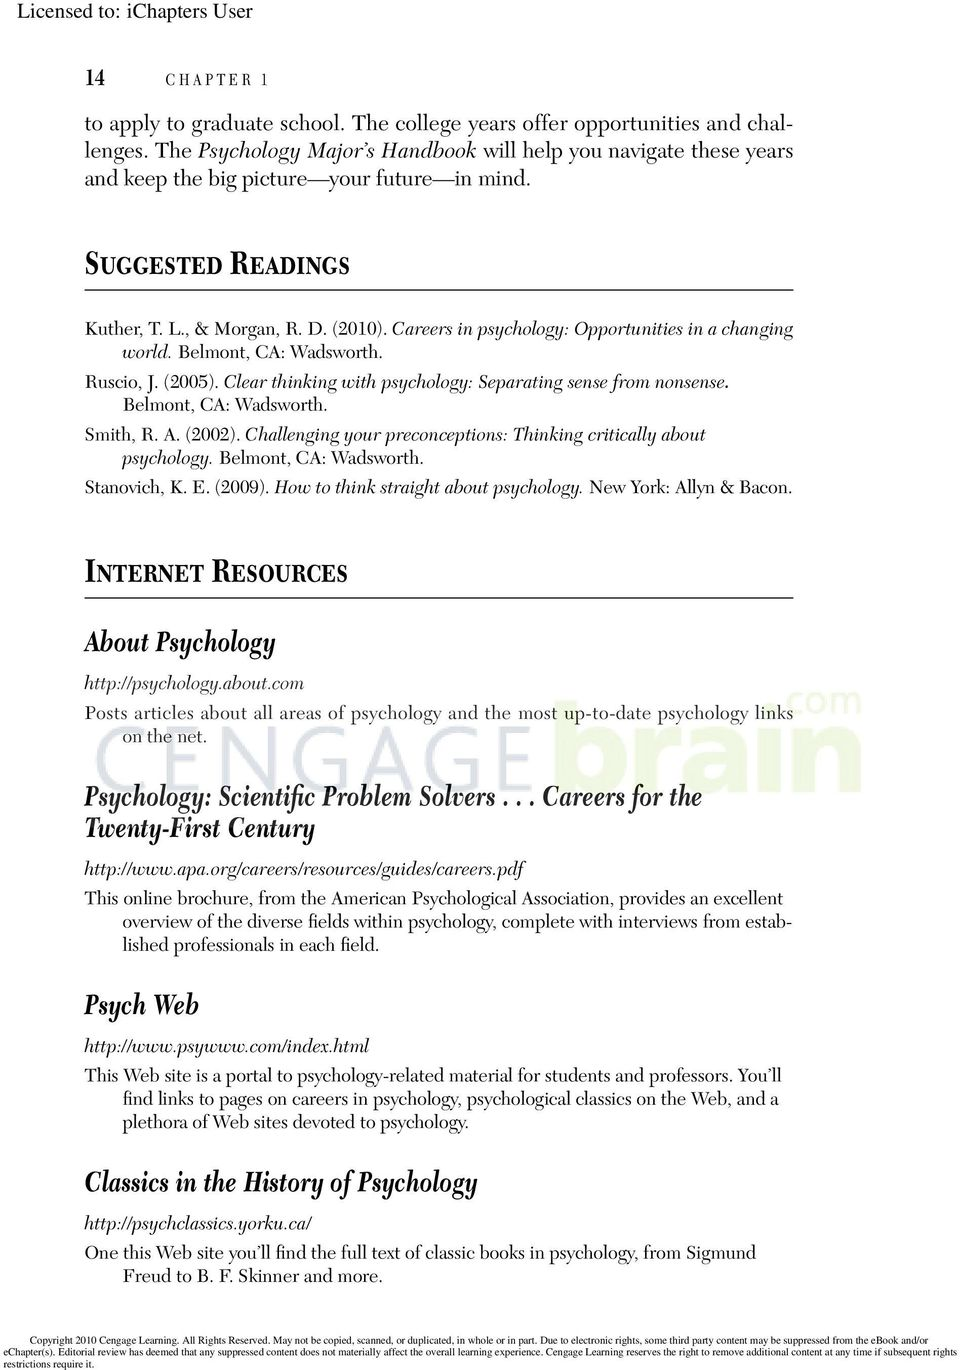 Careers in psychology: Opportunities in a changing world. Belmont, CA: Wadsworth. Ruscio, J. (2005). Clear thinking with psychology: Separating sense from nonsense. Belmont, CA: Wadsworth. Smith, R.